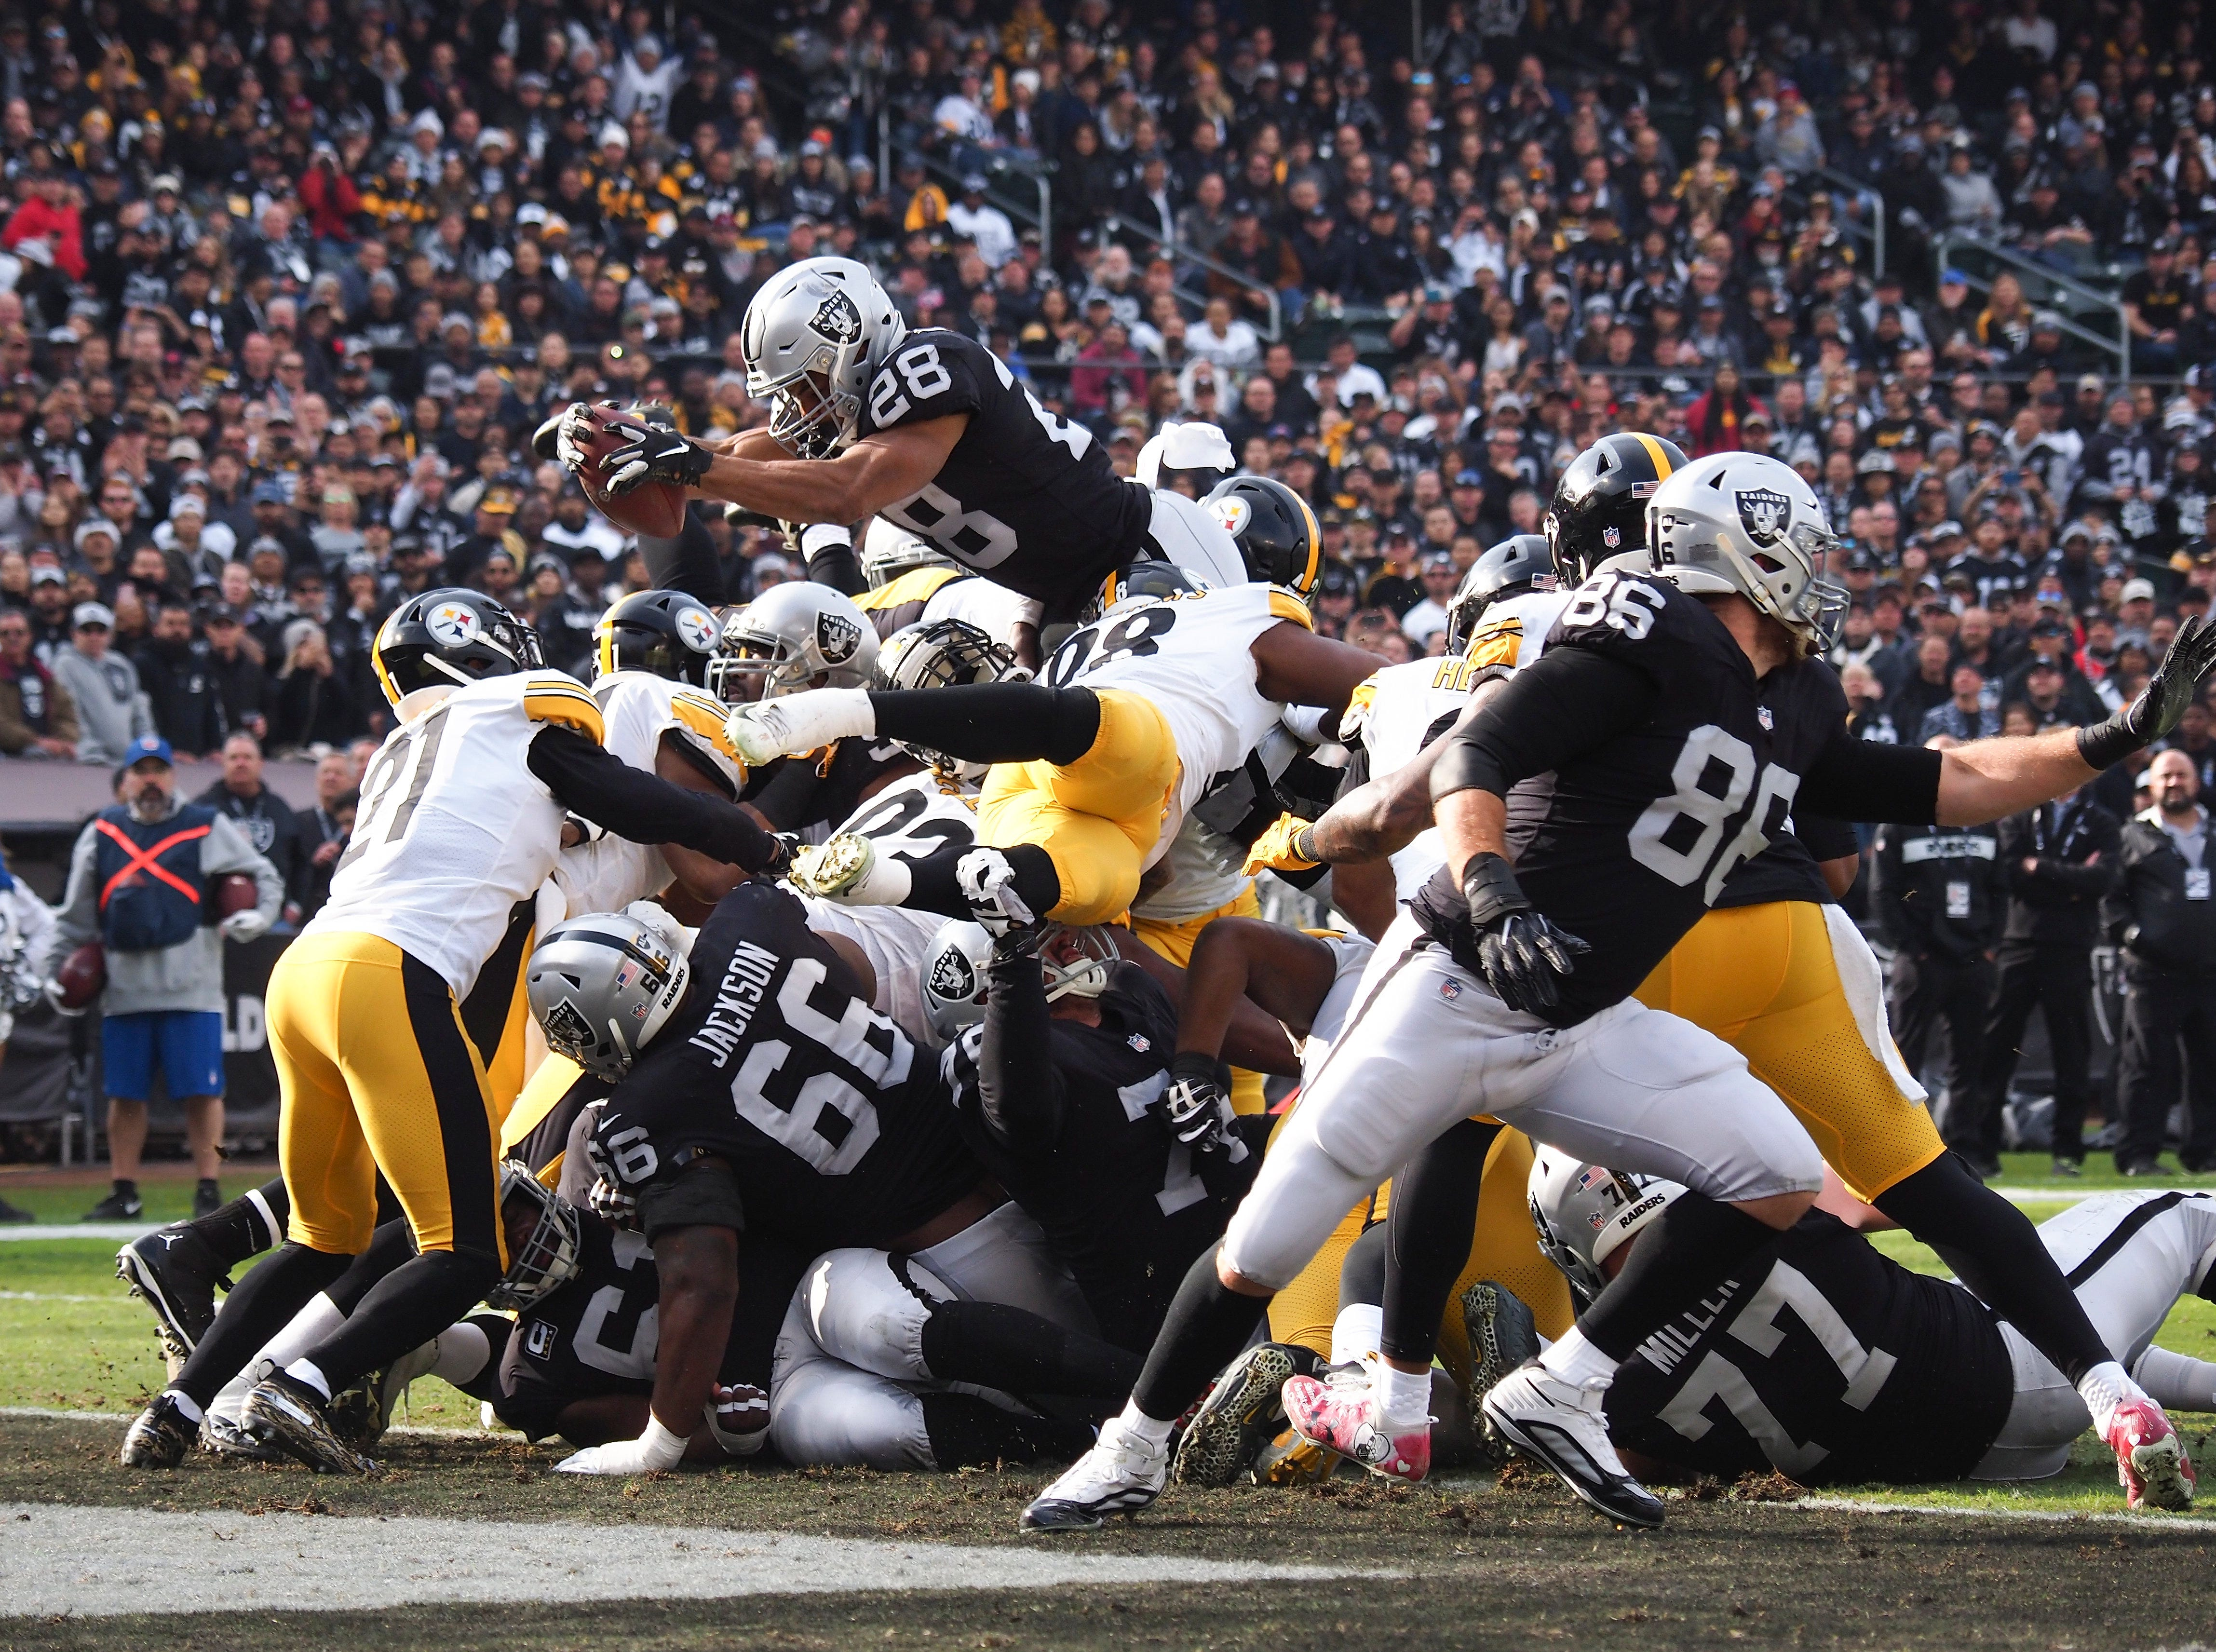 Raiders running back Doug Martin scores a touchdown against the Steelers.